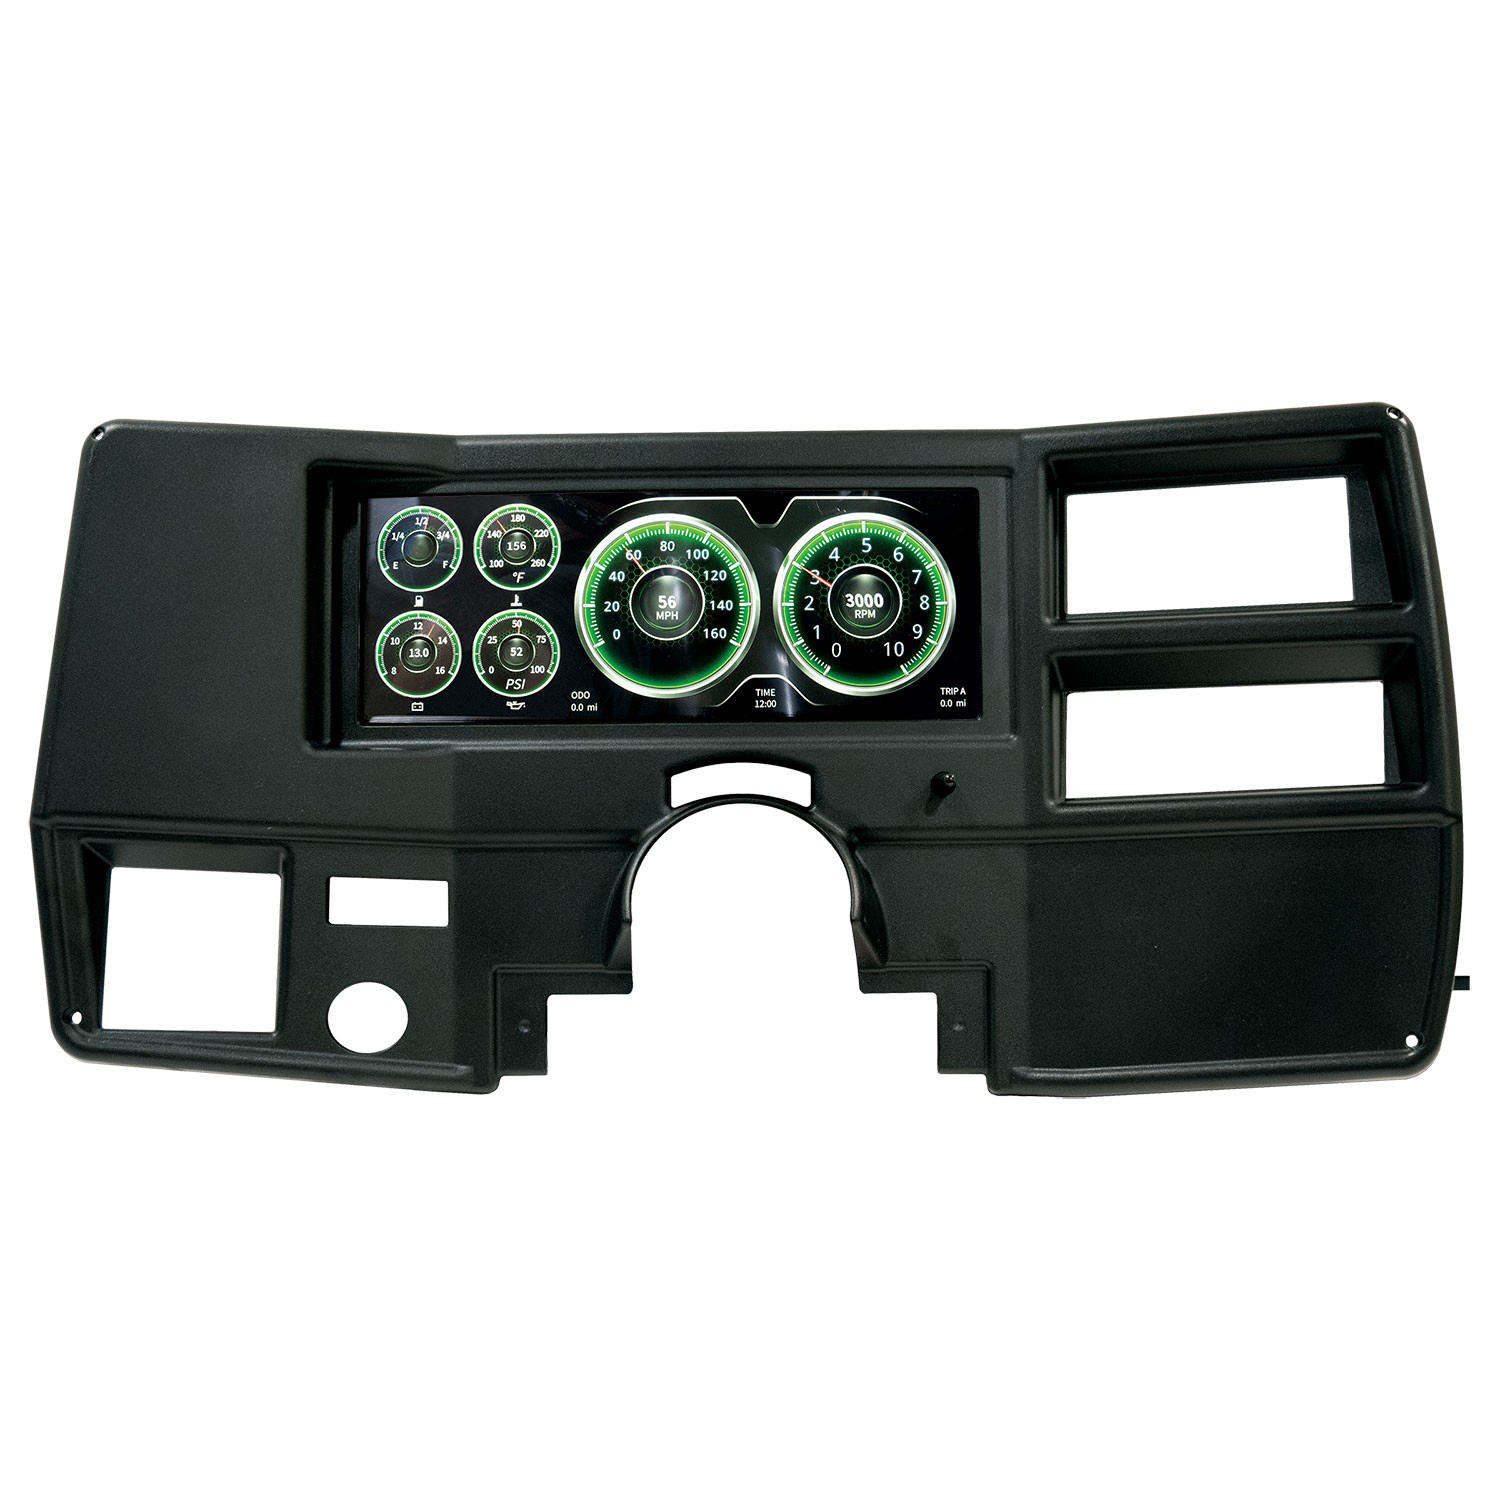 Auto Meter 7004 Digital Dash, Invision HD, 12.3 LCD Screen, Harness / Sensors, GM Fullsize Truck 1973-1987, Kit